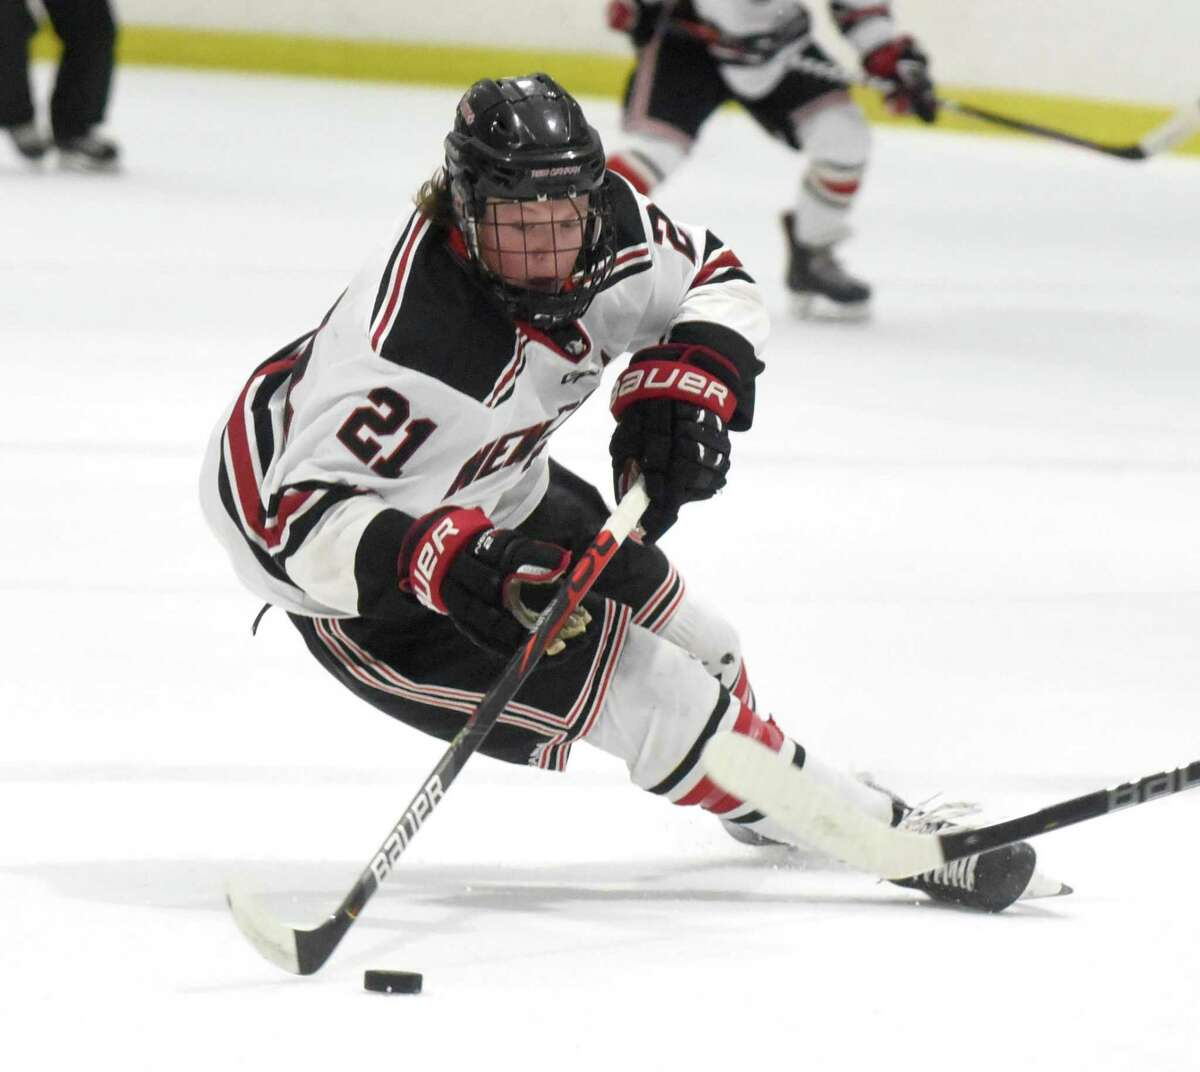 New Canaan's Carter Ellis (21) brings the puck into the offensive zone during the Rams' boys ice hockey game against Northwest Catholic on at the Darien Ice House on Saturday, Jan. 11, 2020.